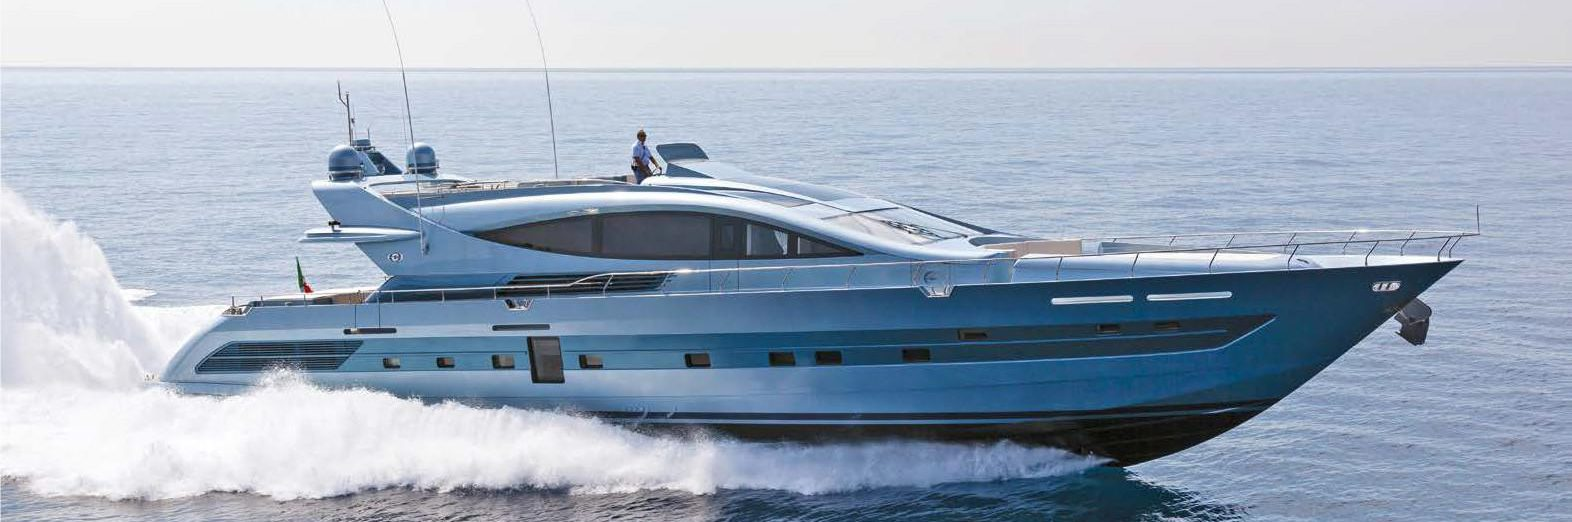 CCN yachts for Sale